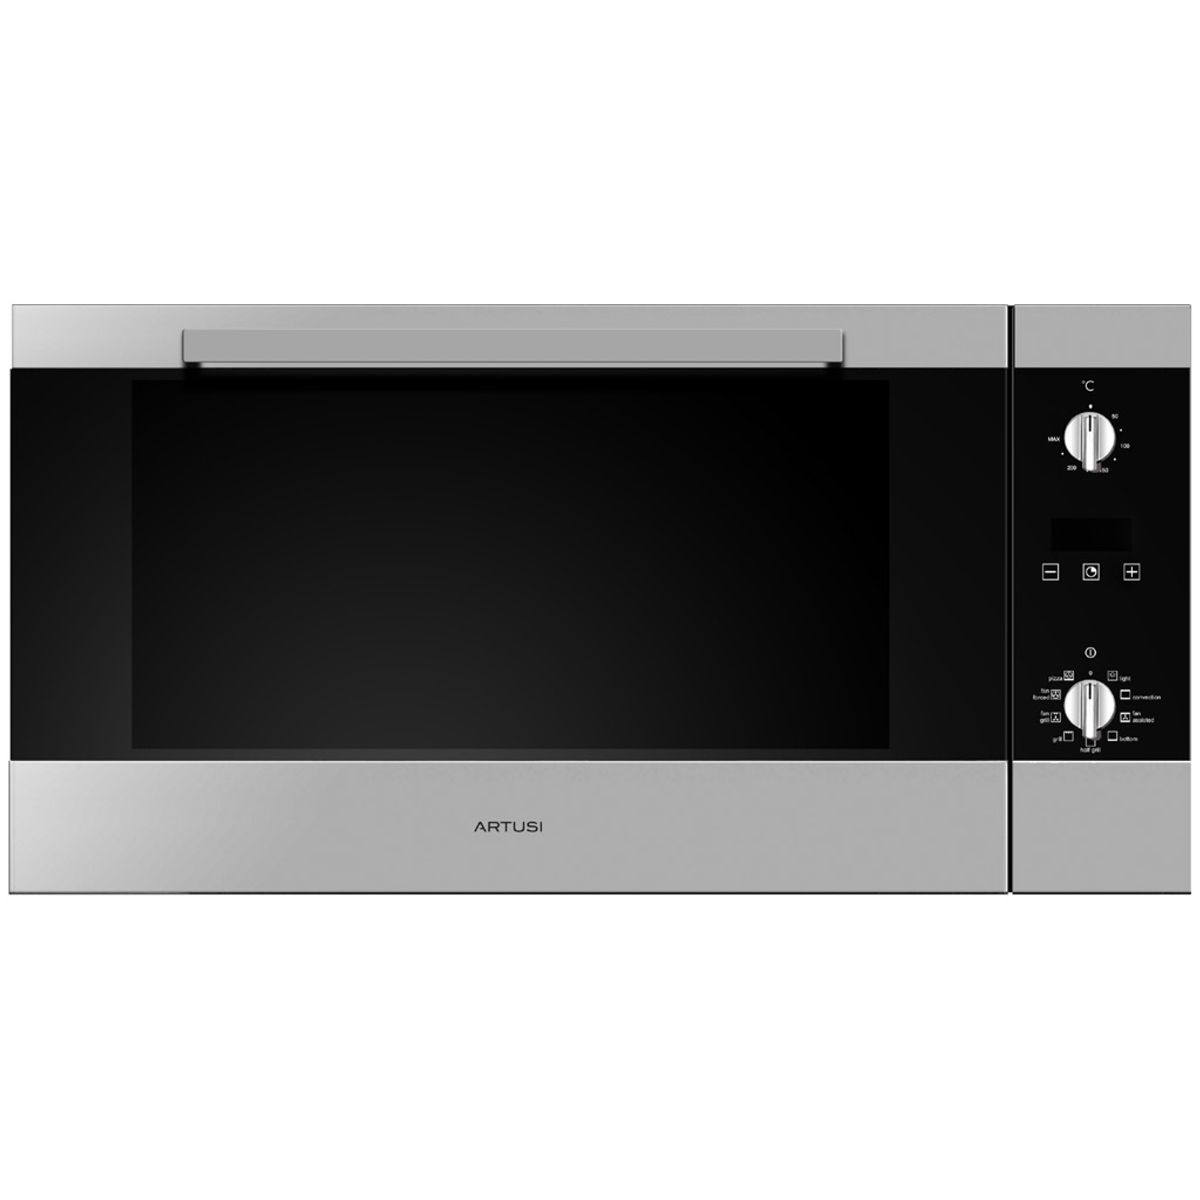 Artusi AO900X 90cm Built-In Electric Oven